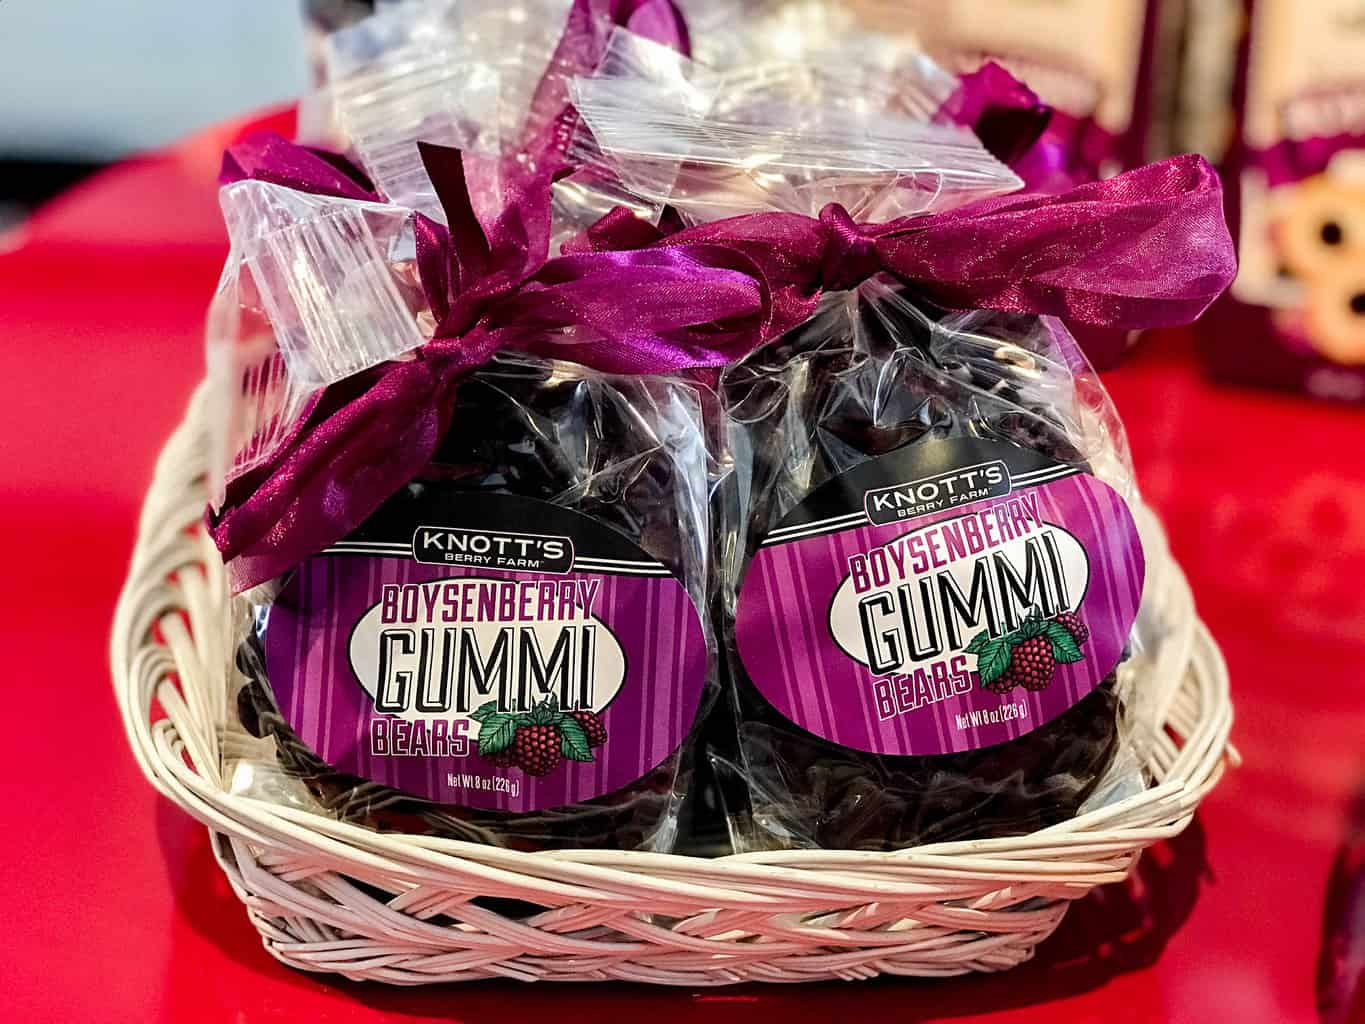 Boysenberry Gummie Bears at Knott's Boysenberry Festival